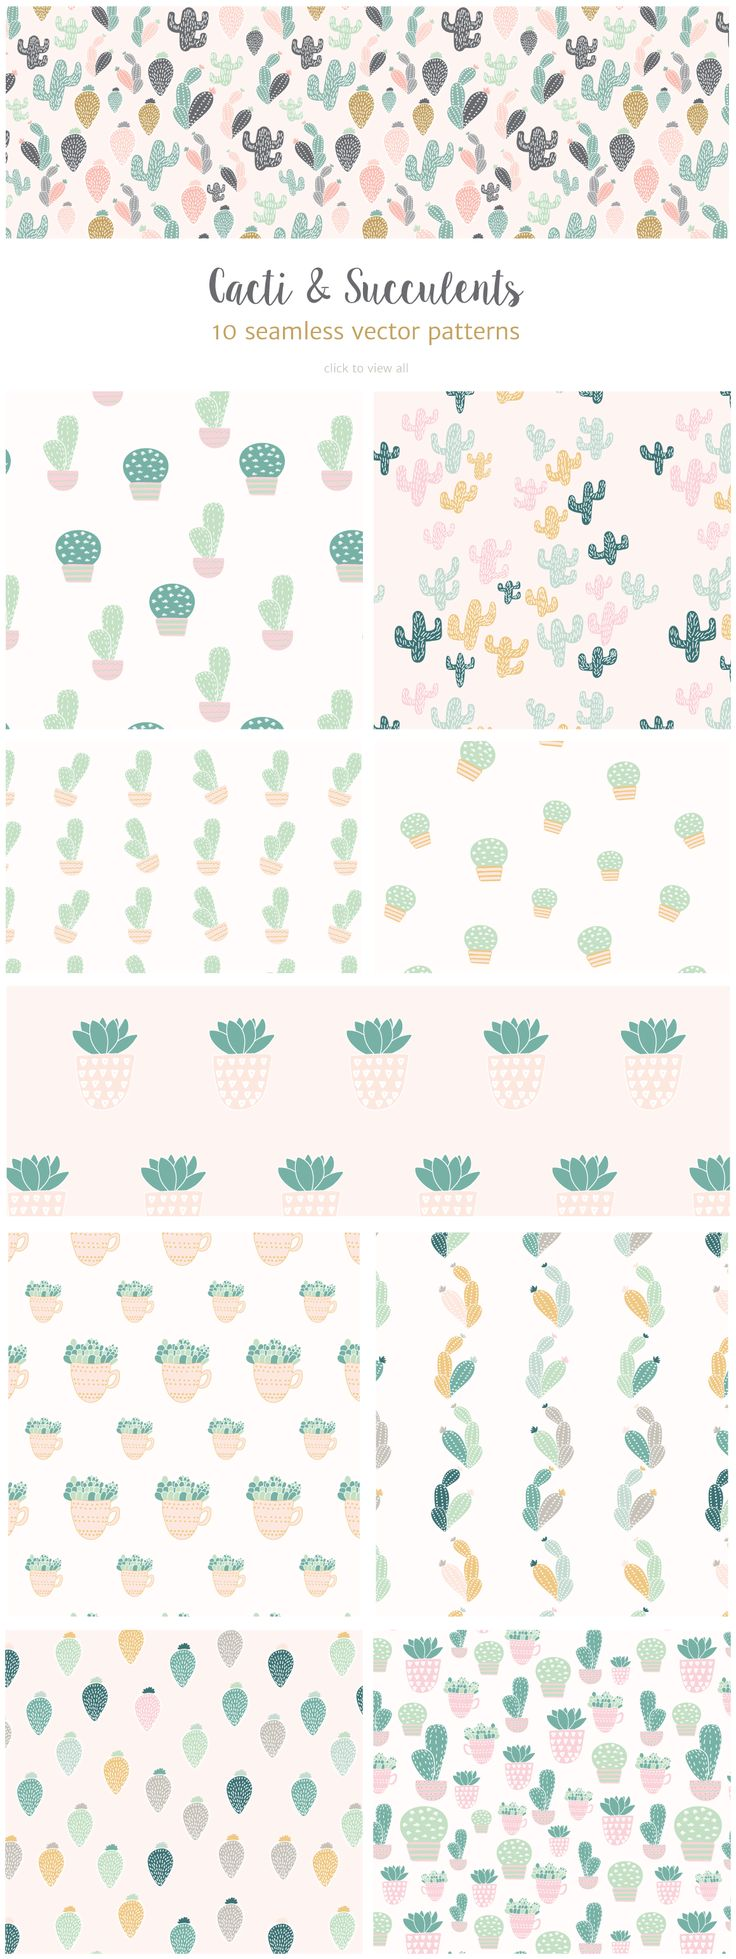 10 seamless vector backgrounds with cactus and succulent plant for your fabrics or paper goods.